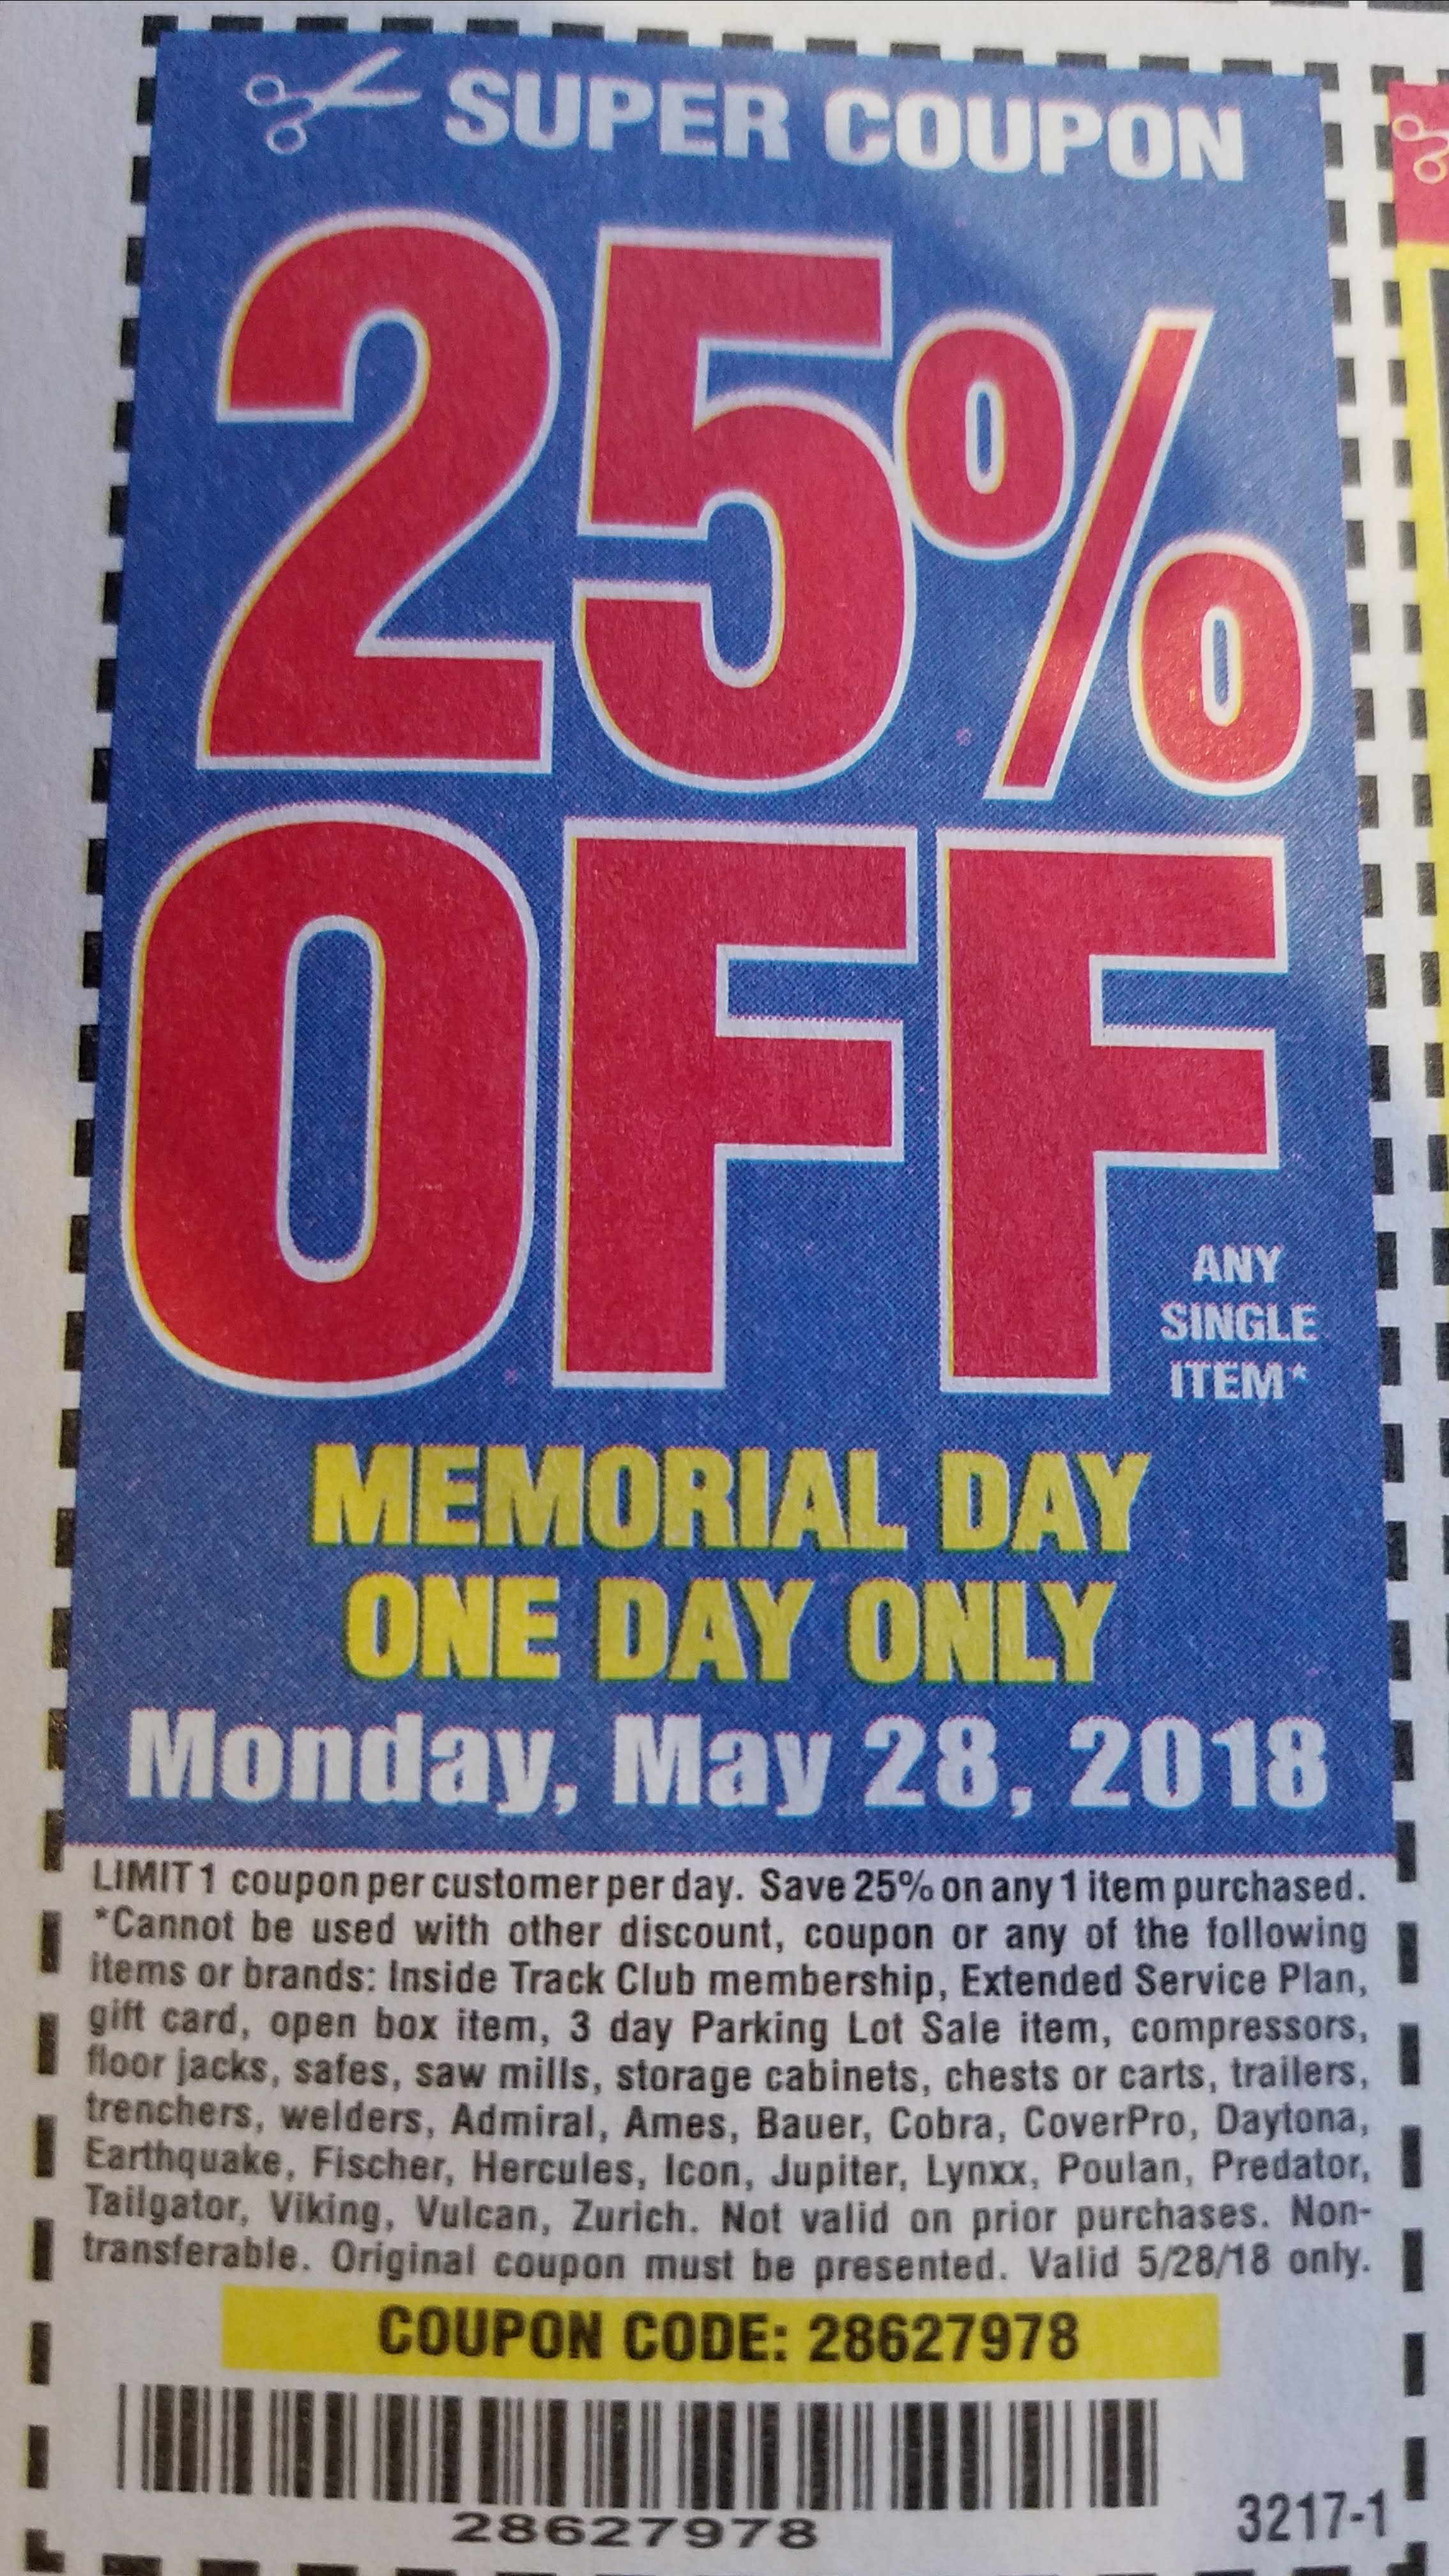 Harbor freight 25 off coupon printable 2018 : Cheap motels